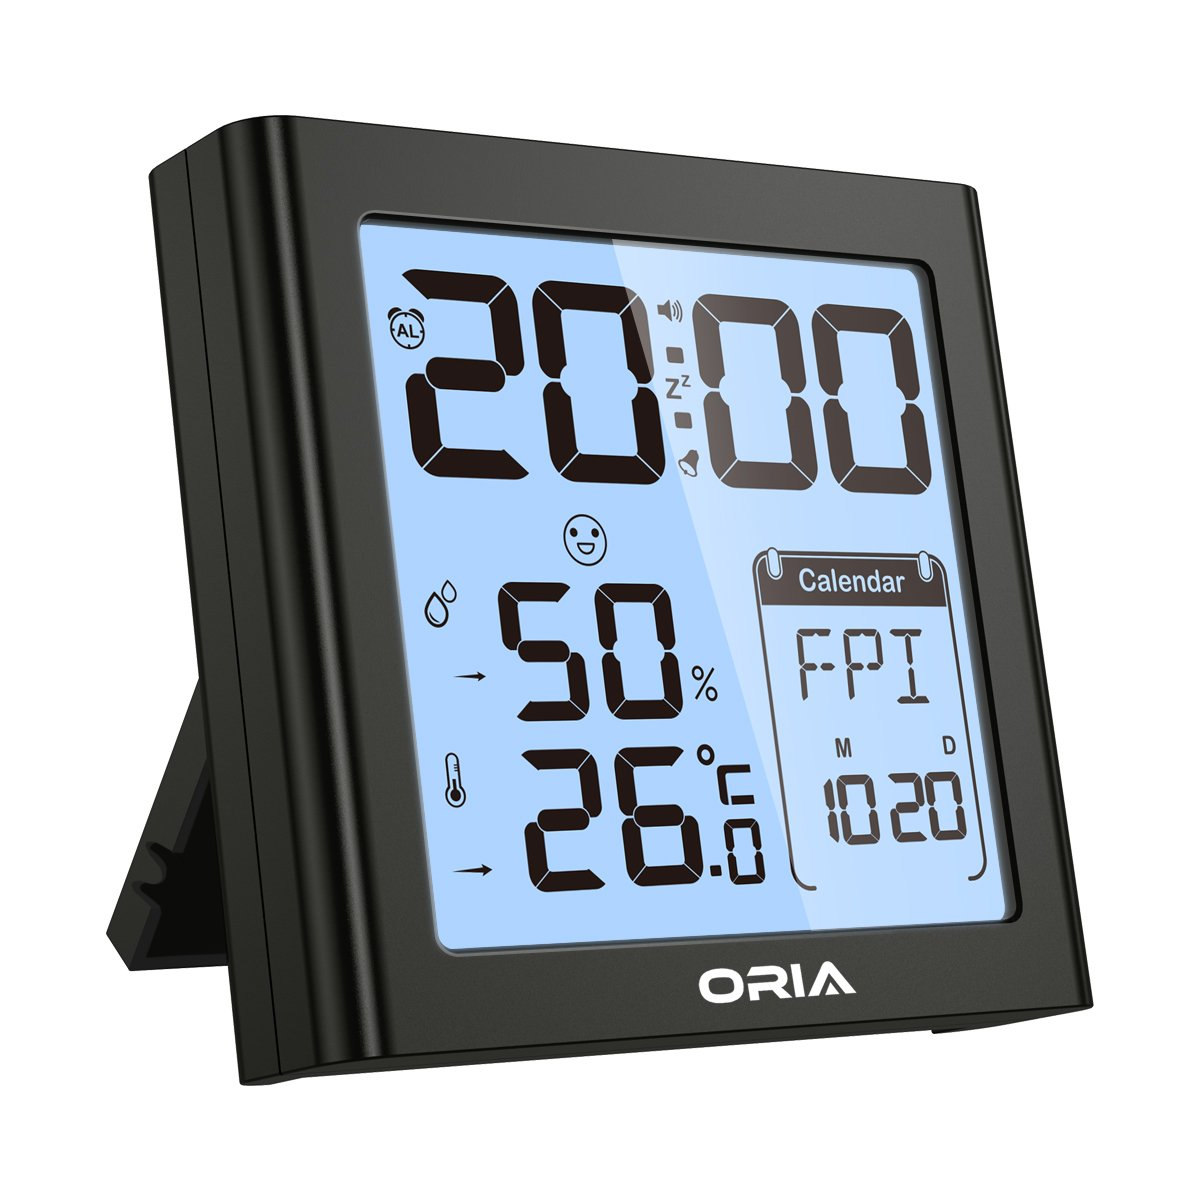 ORIA Refrigerator Thermometer, Wireless Digital Freezer Thermometer 2 Wireless Sensors, Audible Alarm, Min/Max Record, LCD Display Home, Restaurants, Bars, Cafes (Battery not Included)